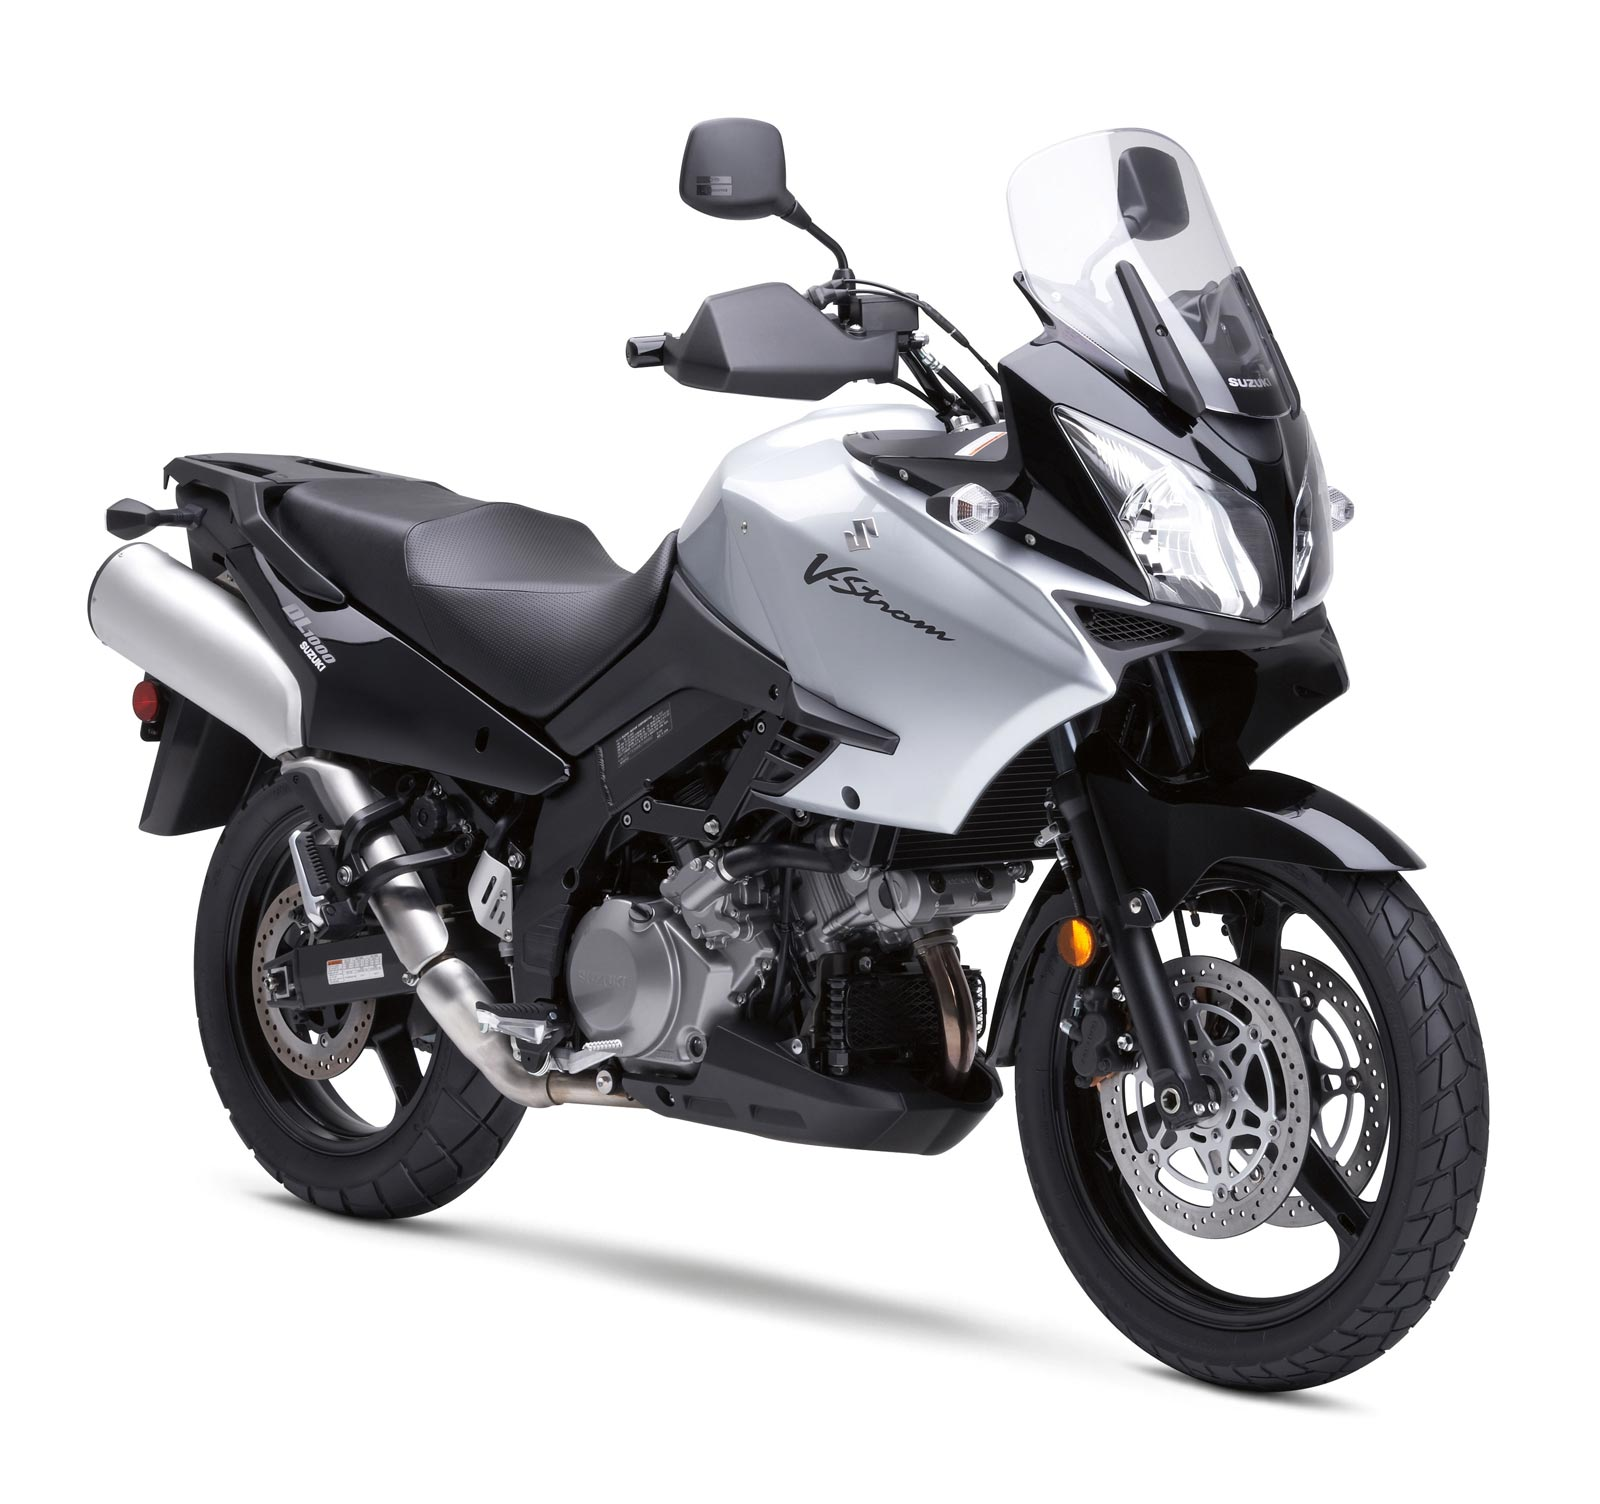 suzuki dl1000 v strom 1000 specs 2007 2008 autoevolution. Black Bedroom Furniture Sets. Home Design Ideas